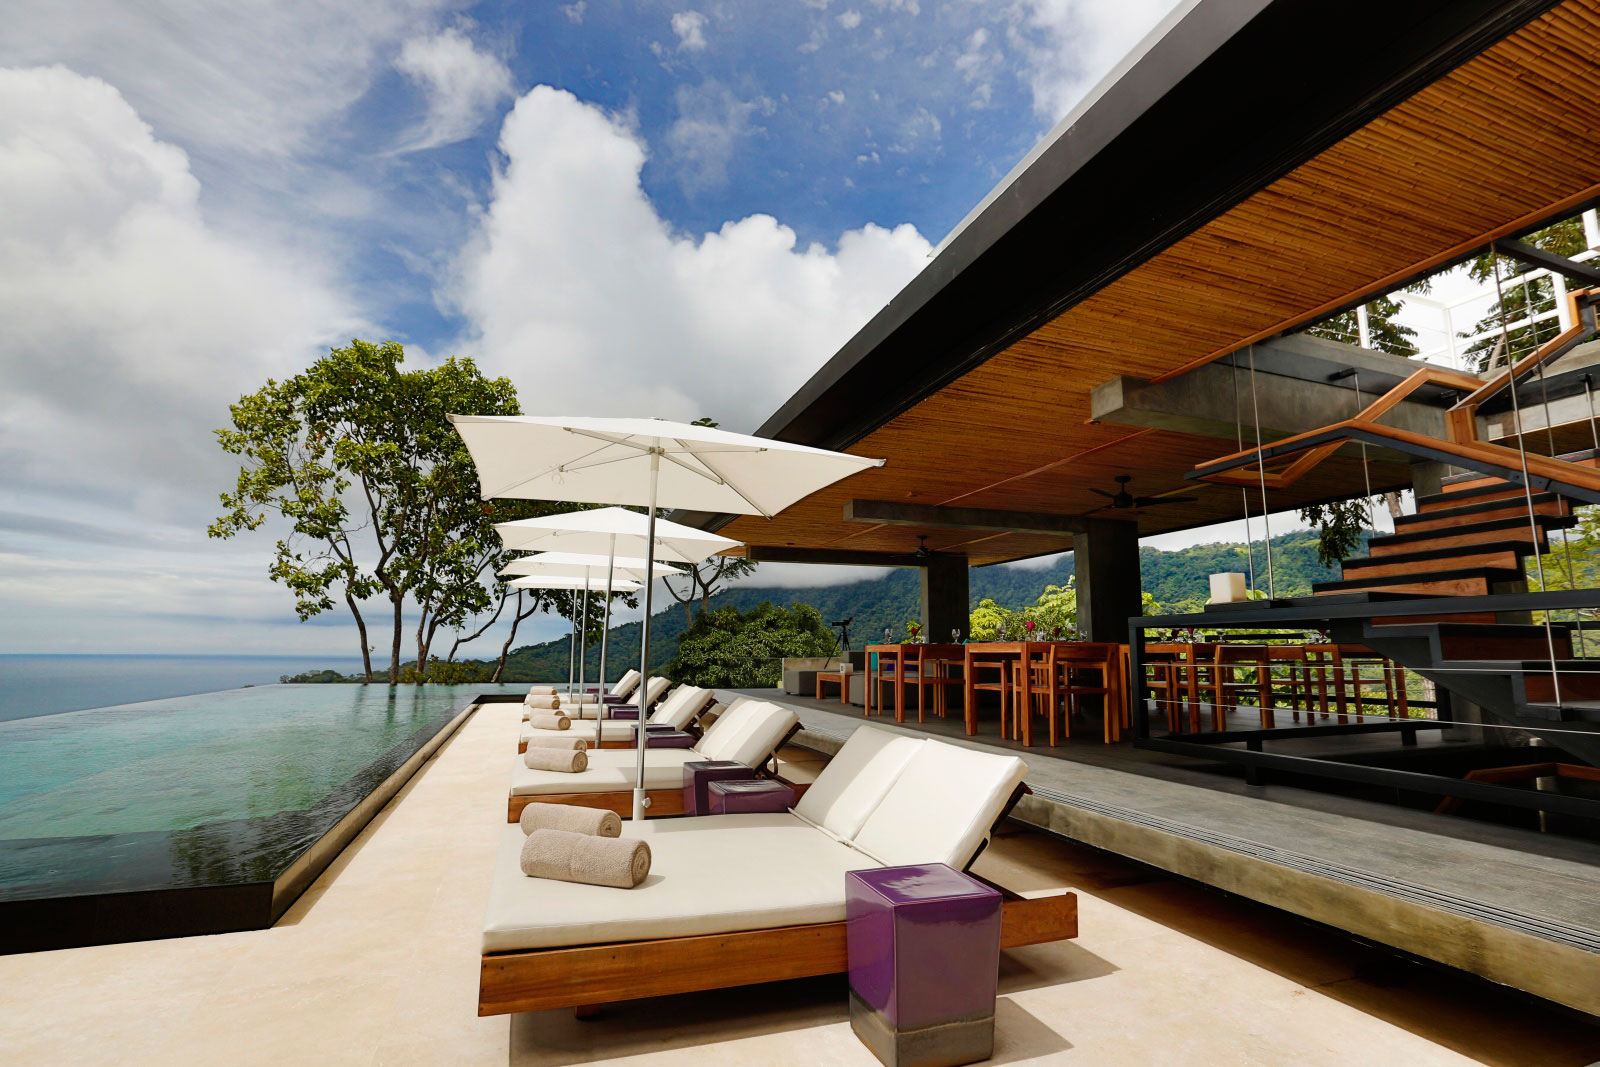 Stunning Terrace, Holiday Villas in Costa Rica